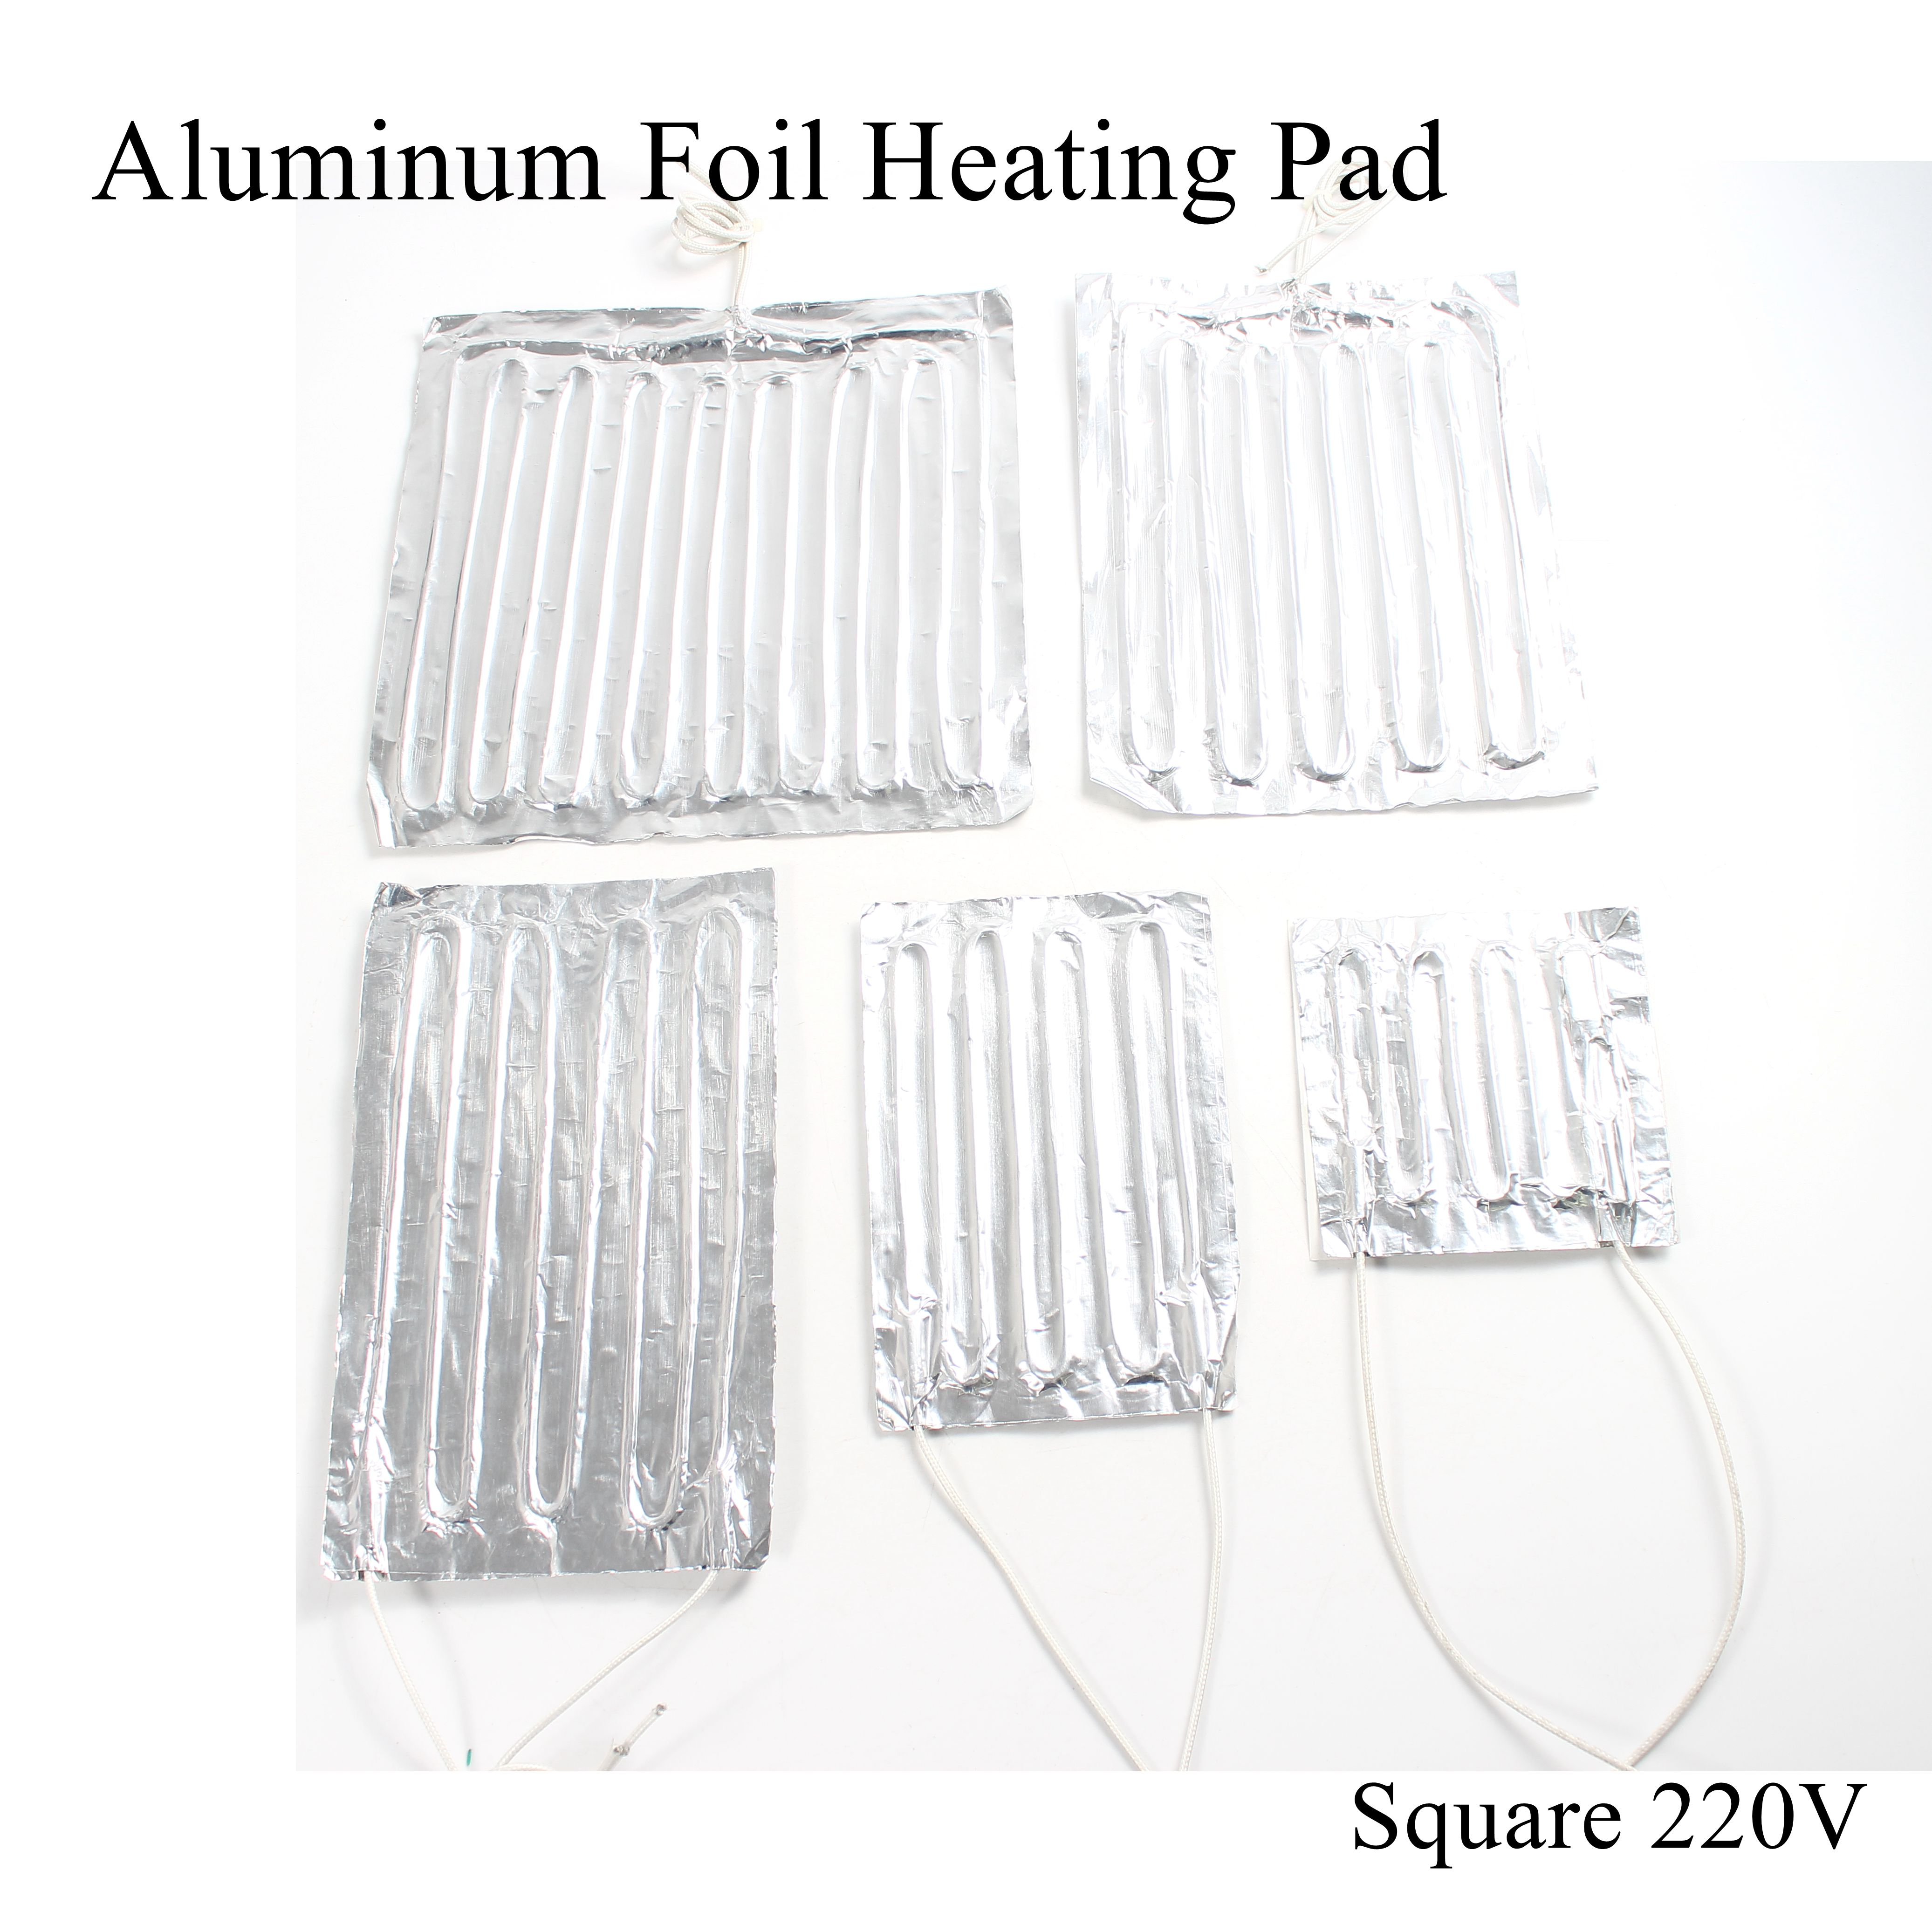 220V Aluminum Foil Heating Pad Square Heat Mat Heated Bed Plate Heater Self-adhesive Flexible Waterproof For 3D Printer Diesel